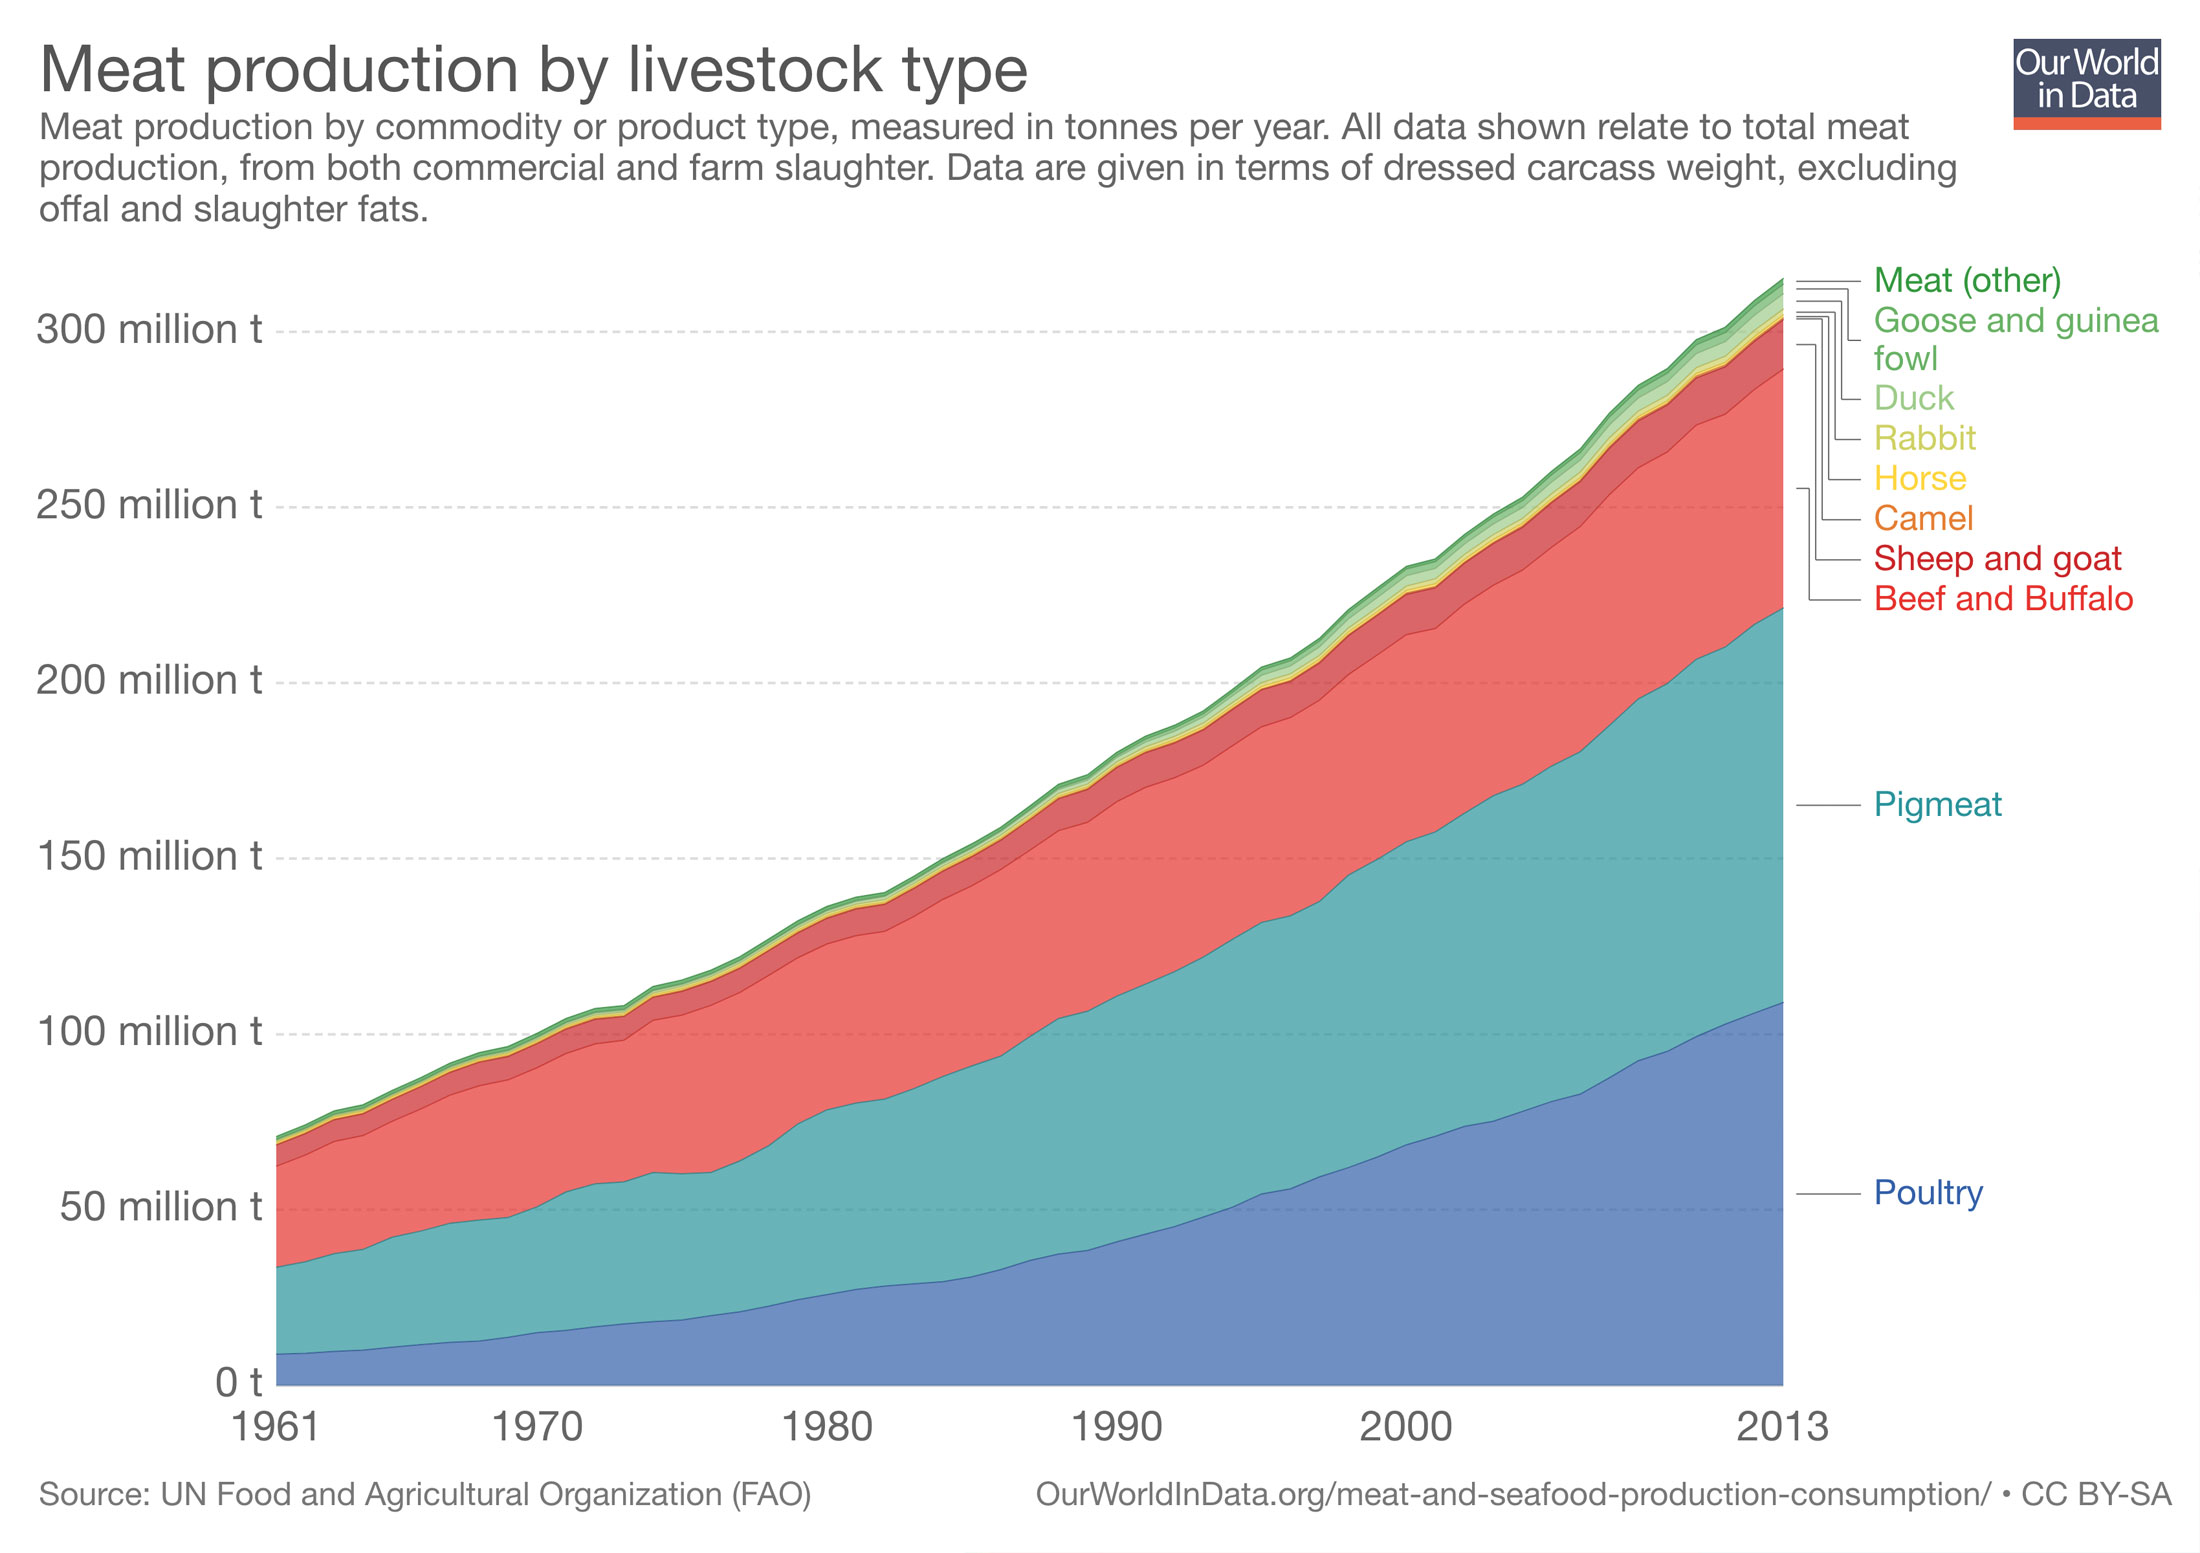 global-meat-production-by-livestock-type.jpg